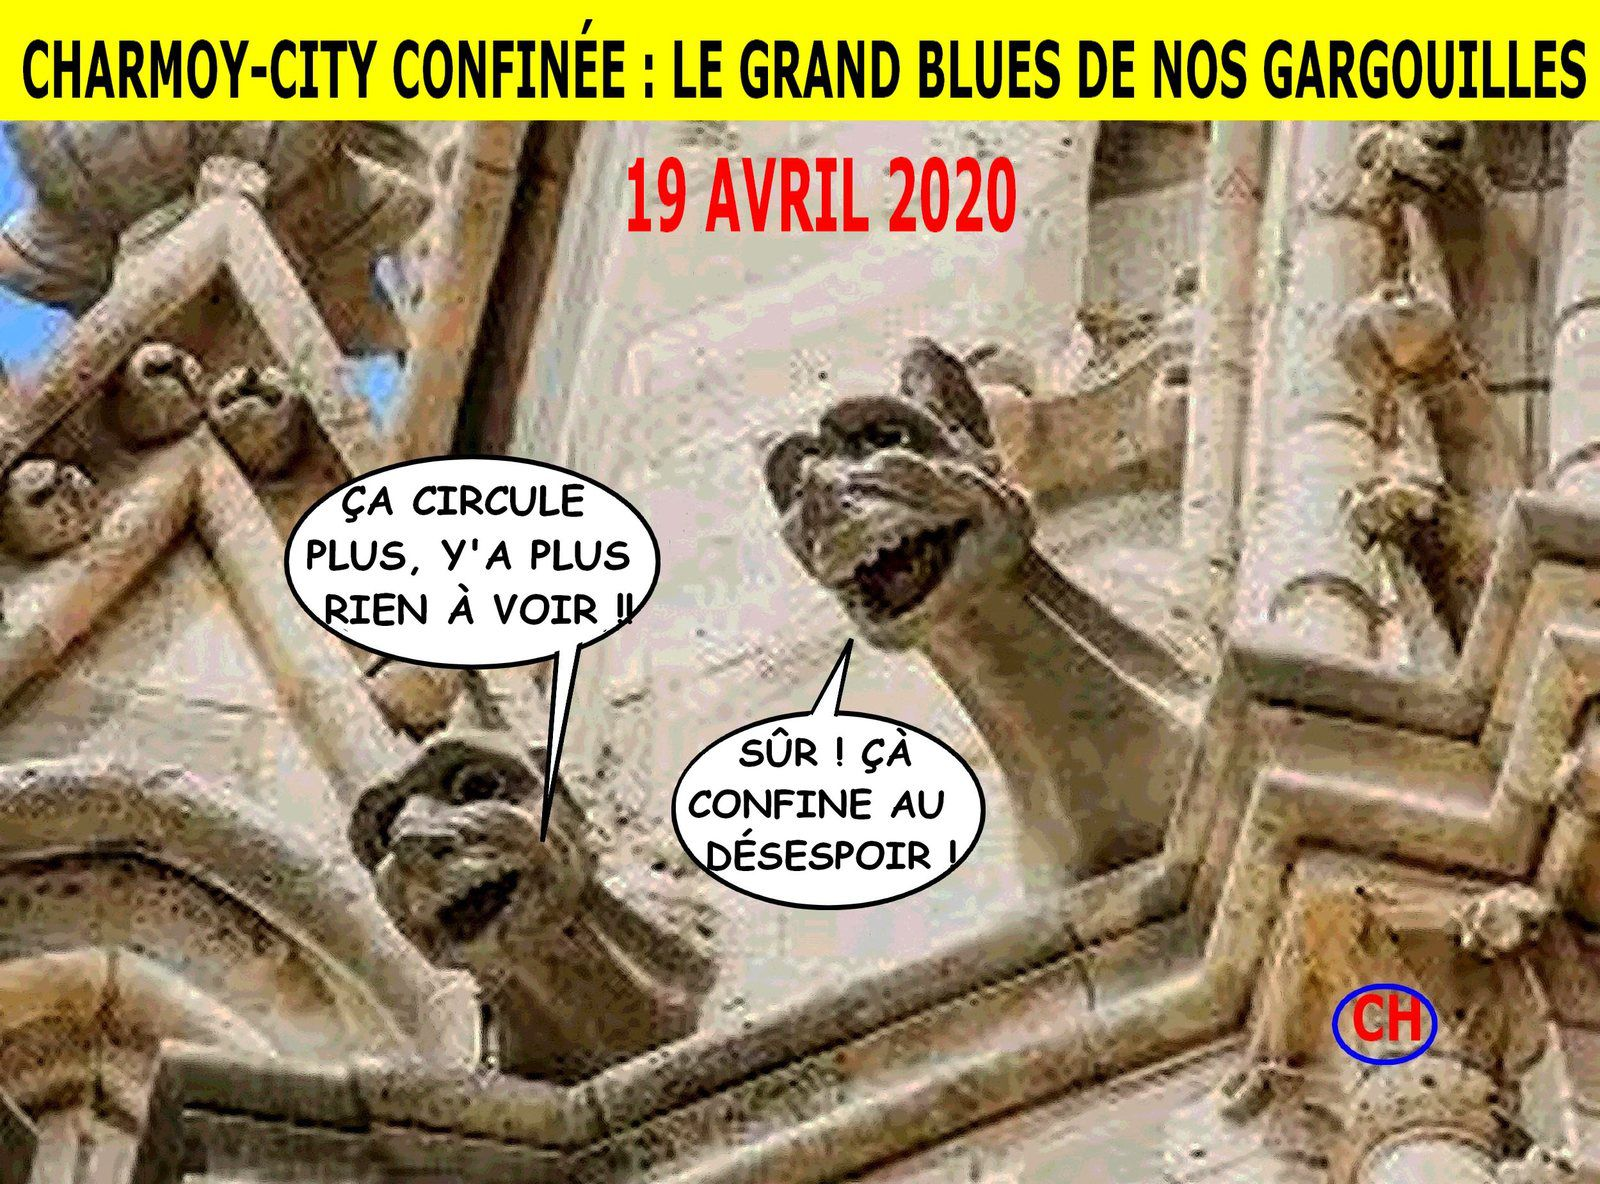 Charmoy-City confinée, le grand blues de nos gargouilles.jpg